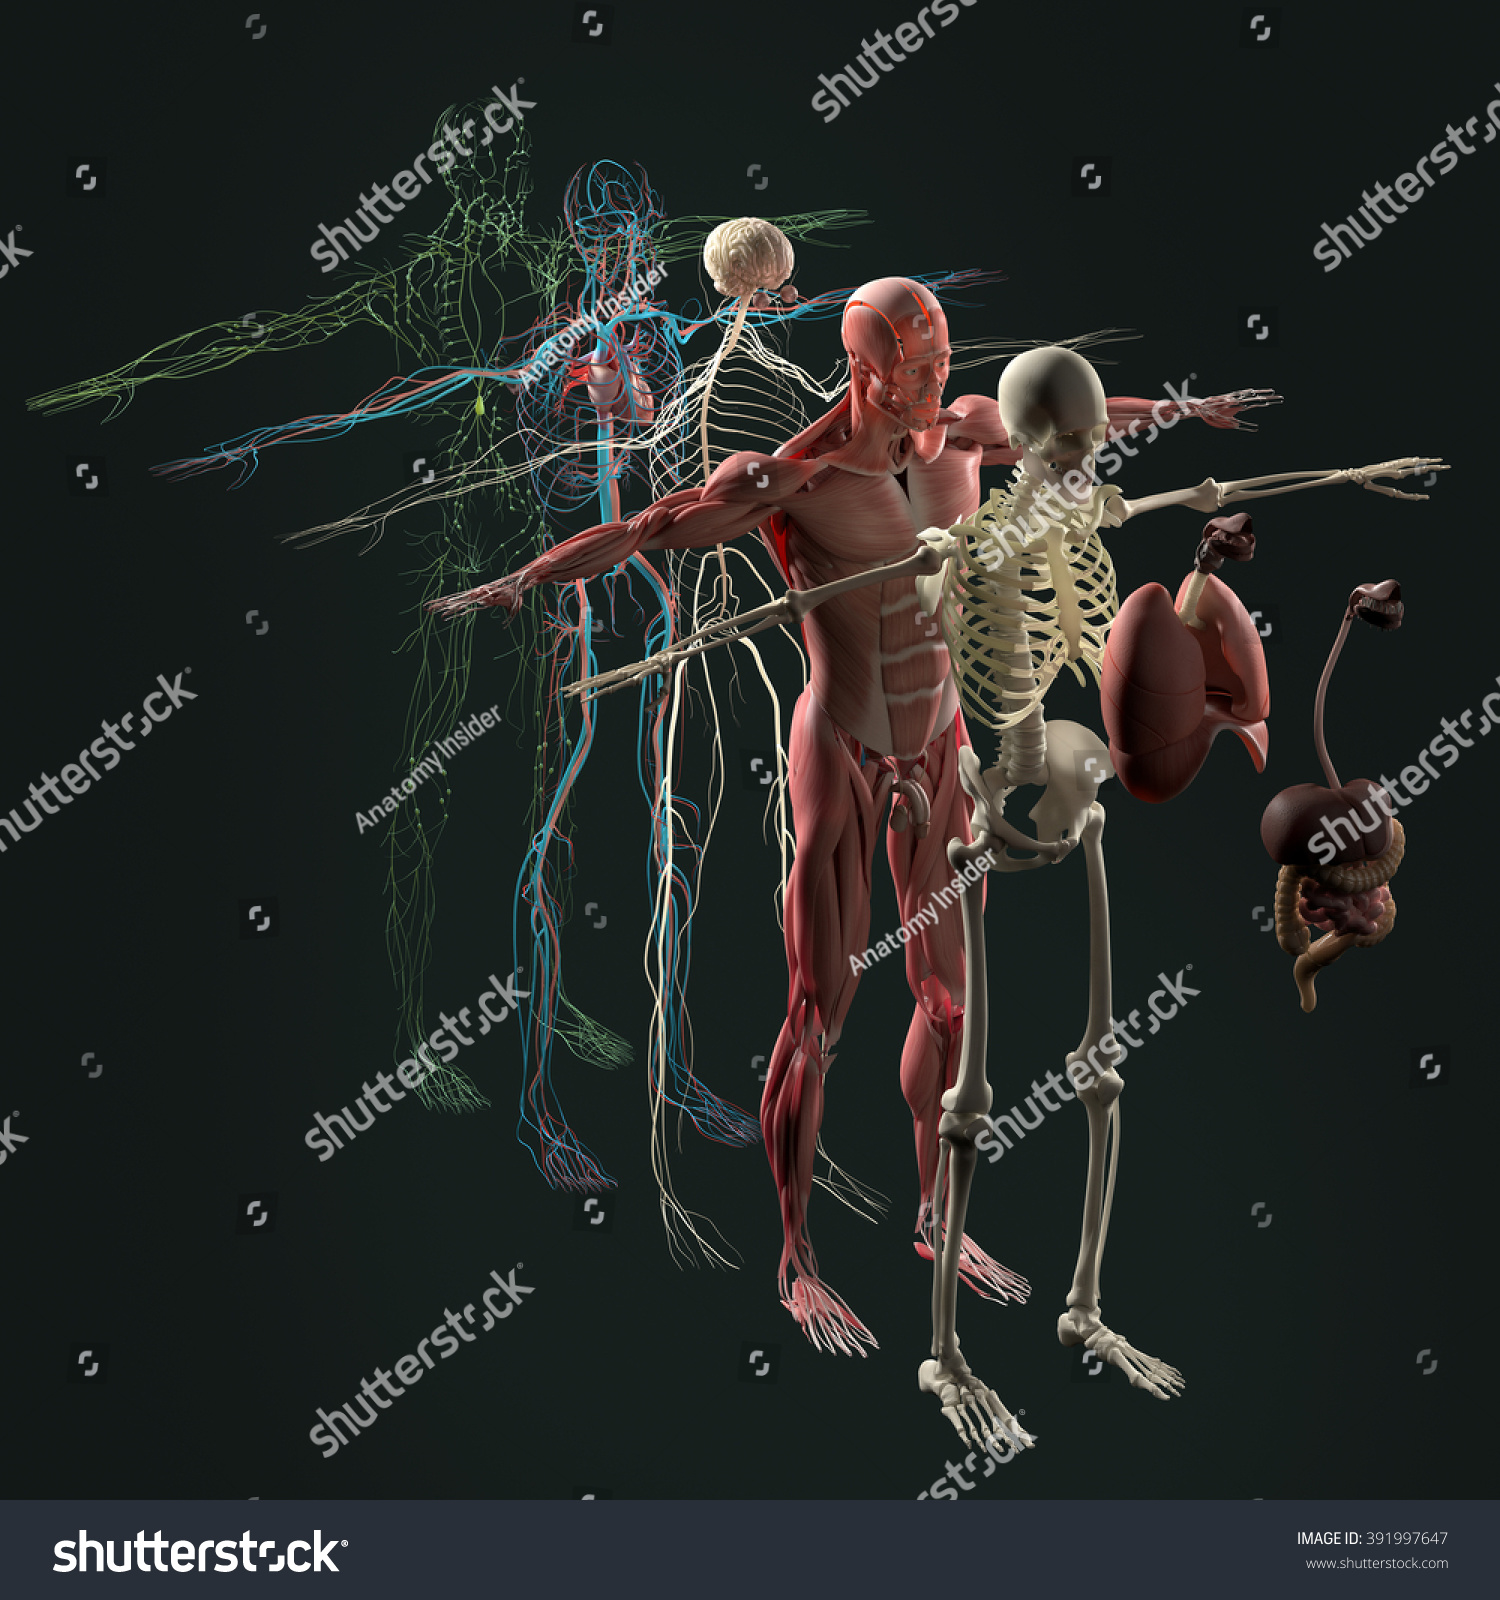 Human Anatomy Exploded View Deconstructed Separate Elements Muscle Bone Organs Nervous